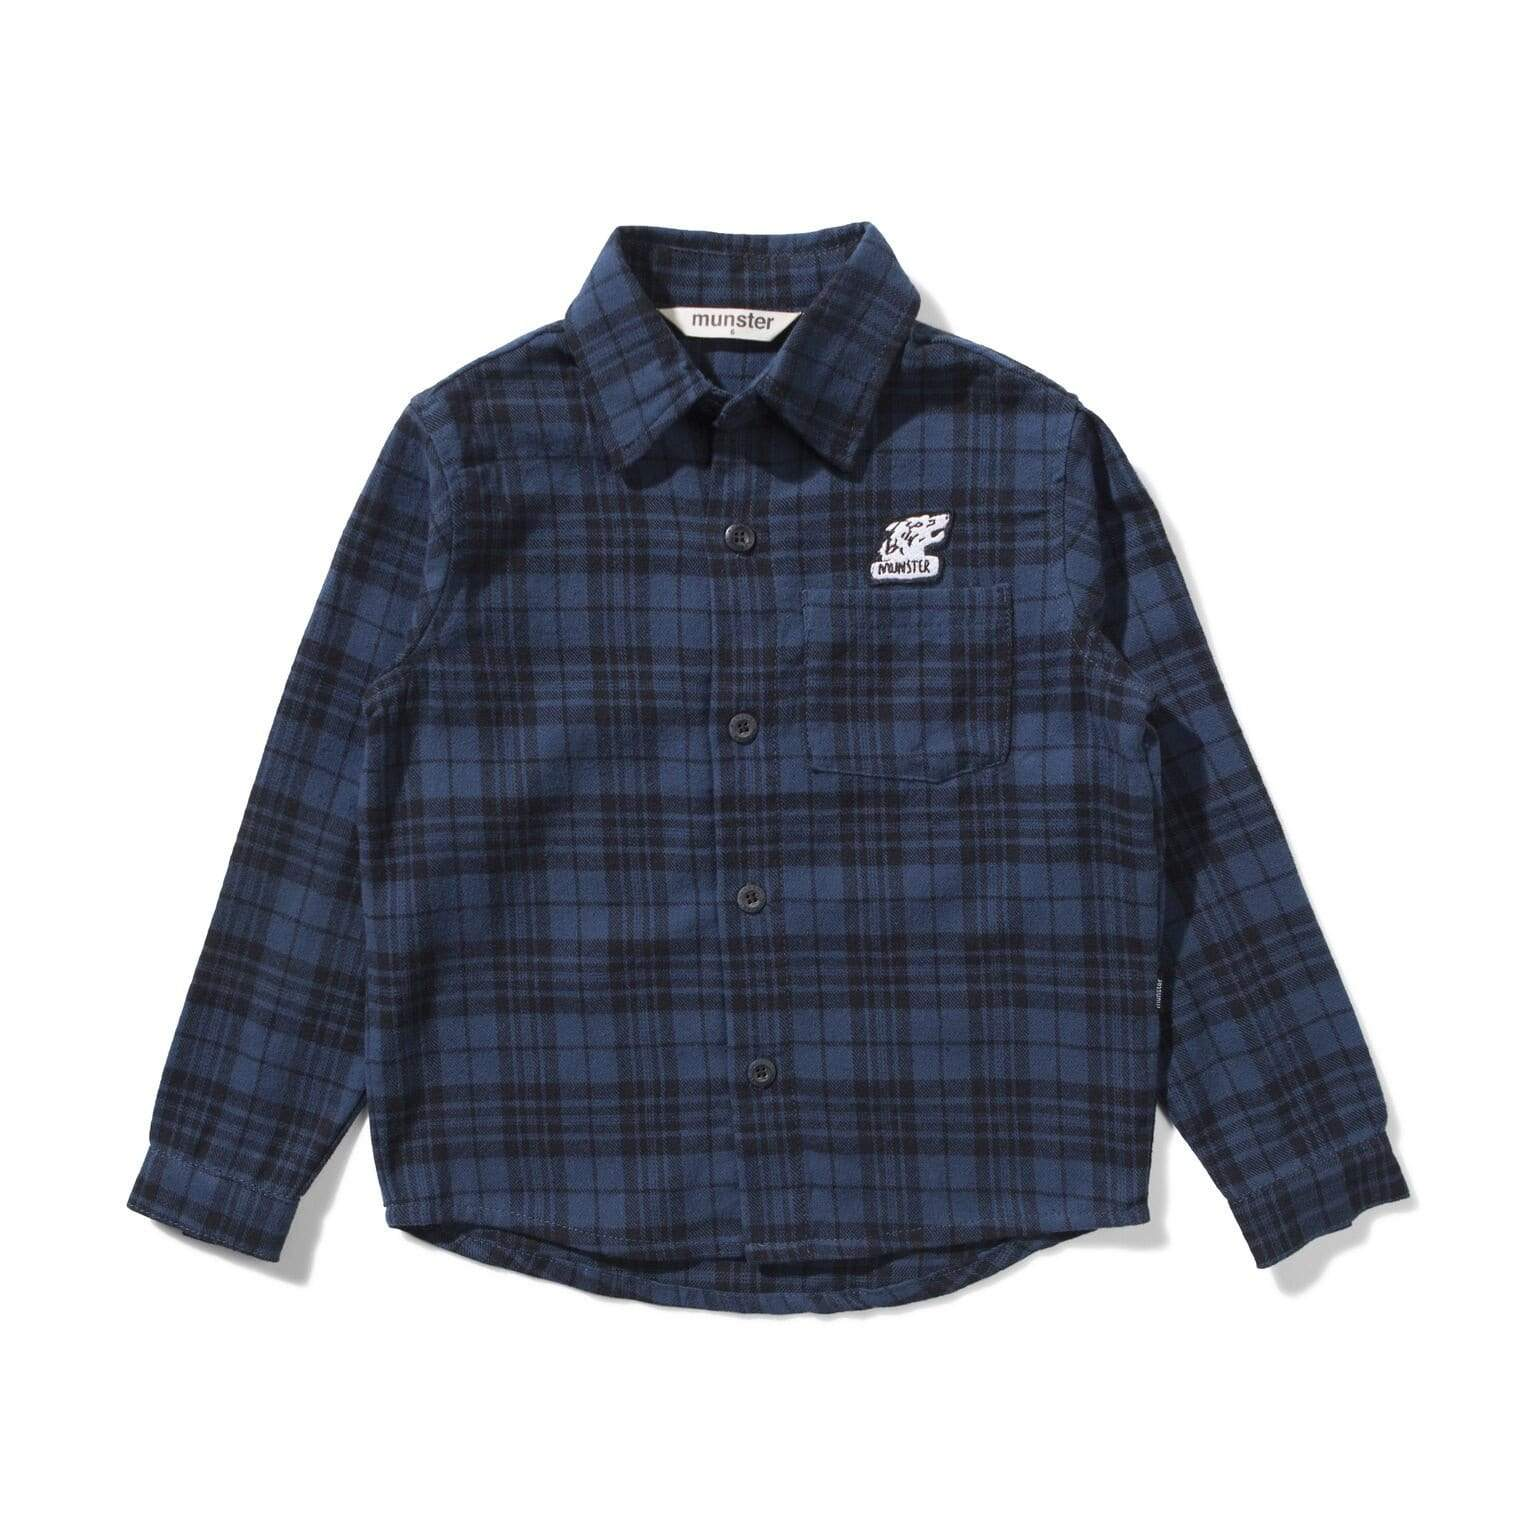 Munster Shirt Niseiko Shirt - Blue